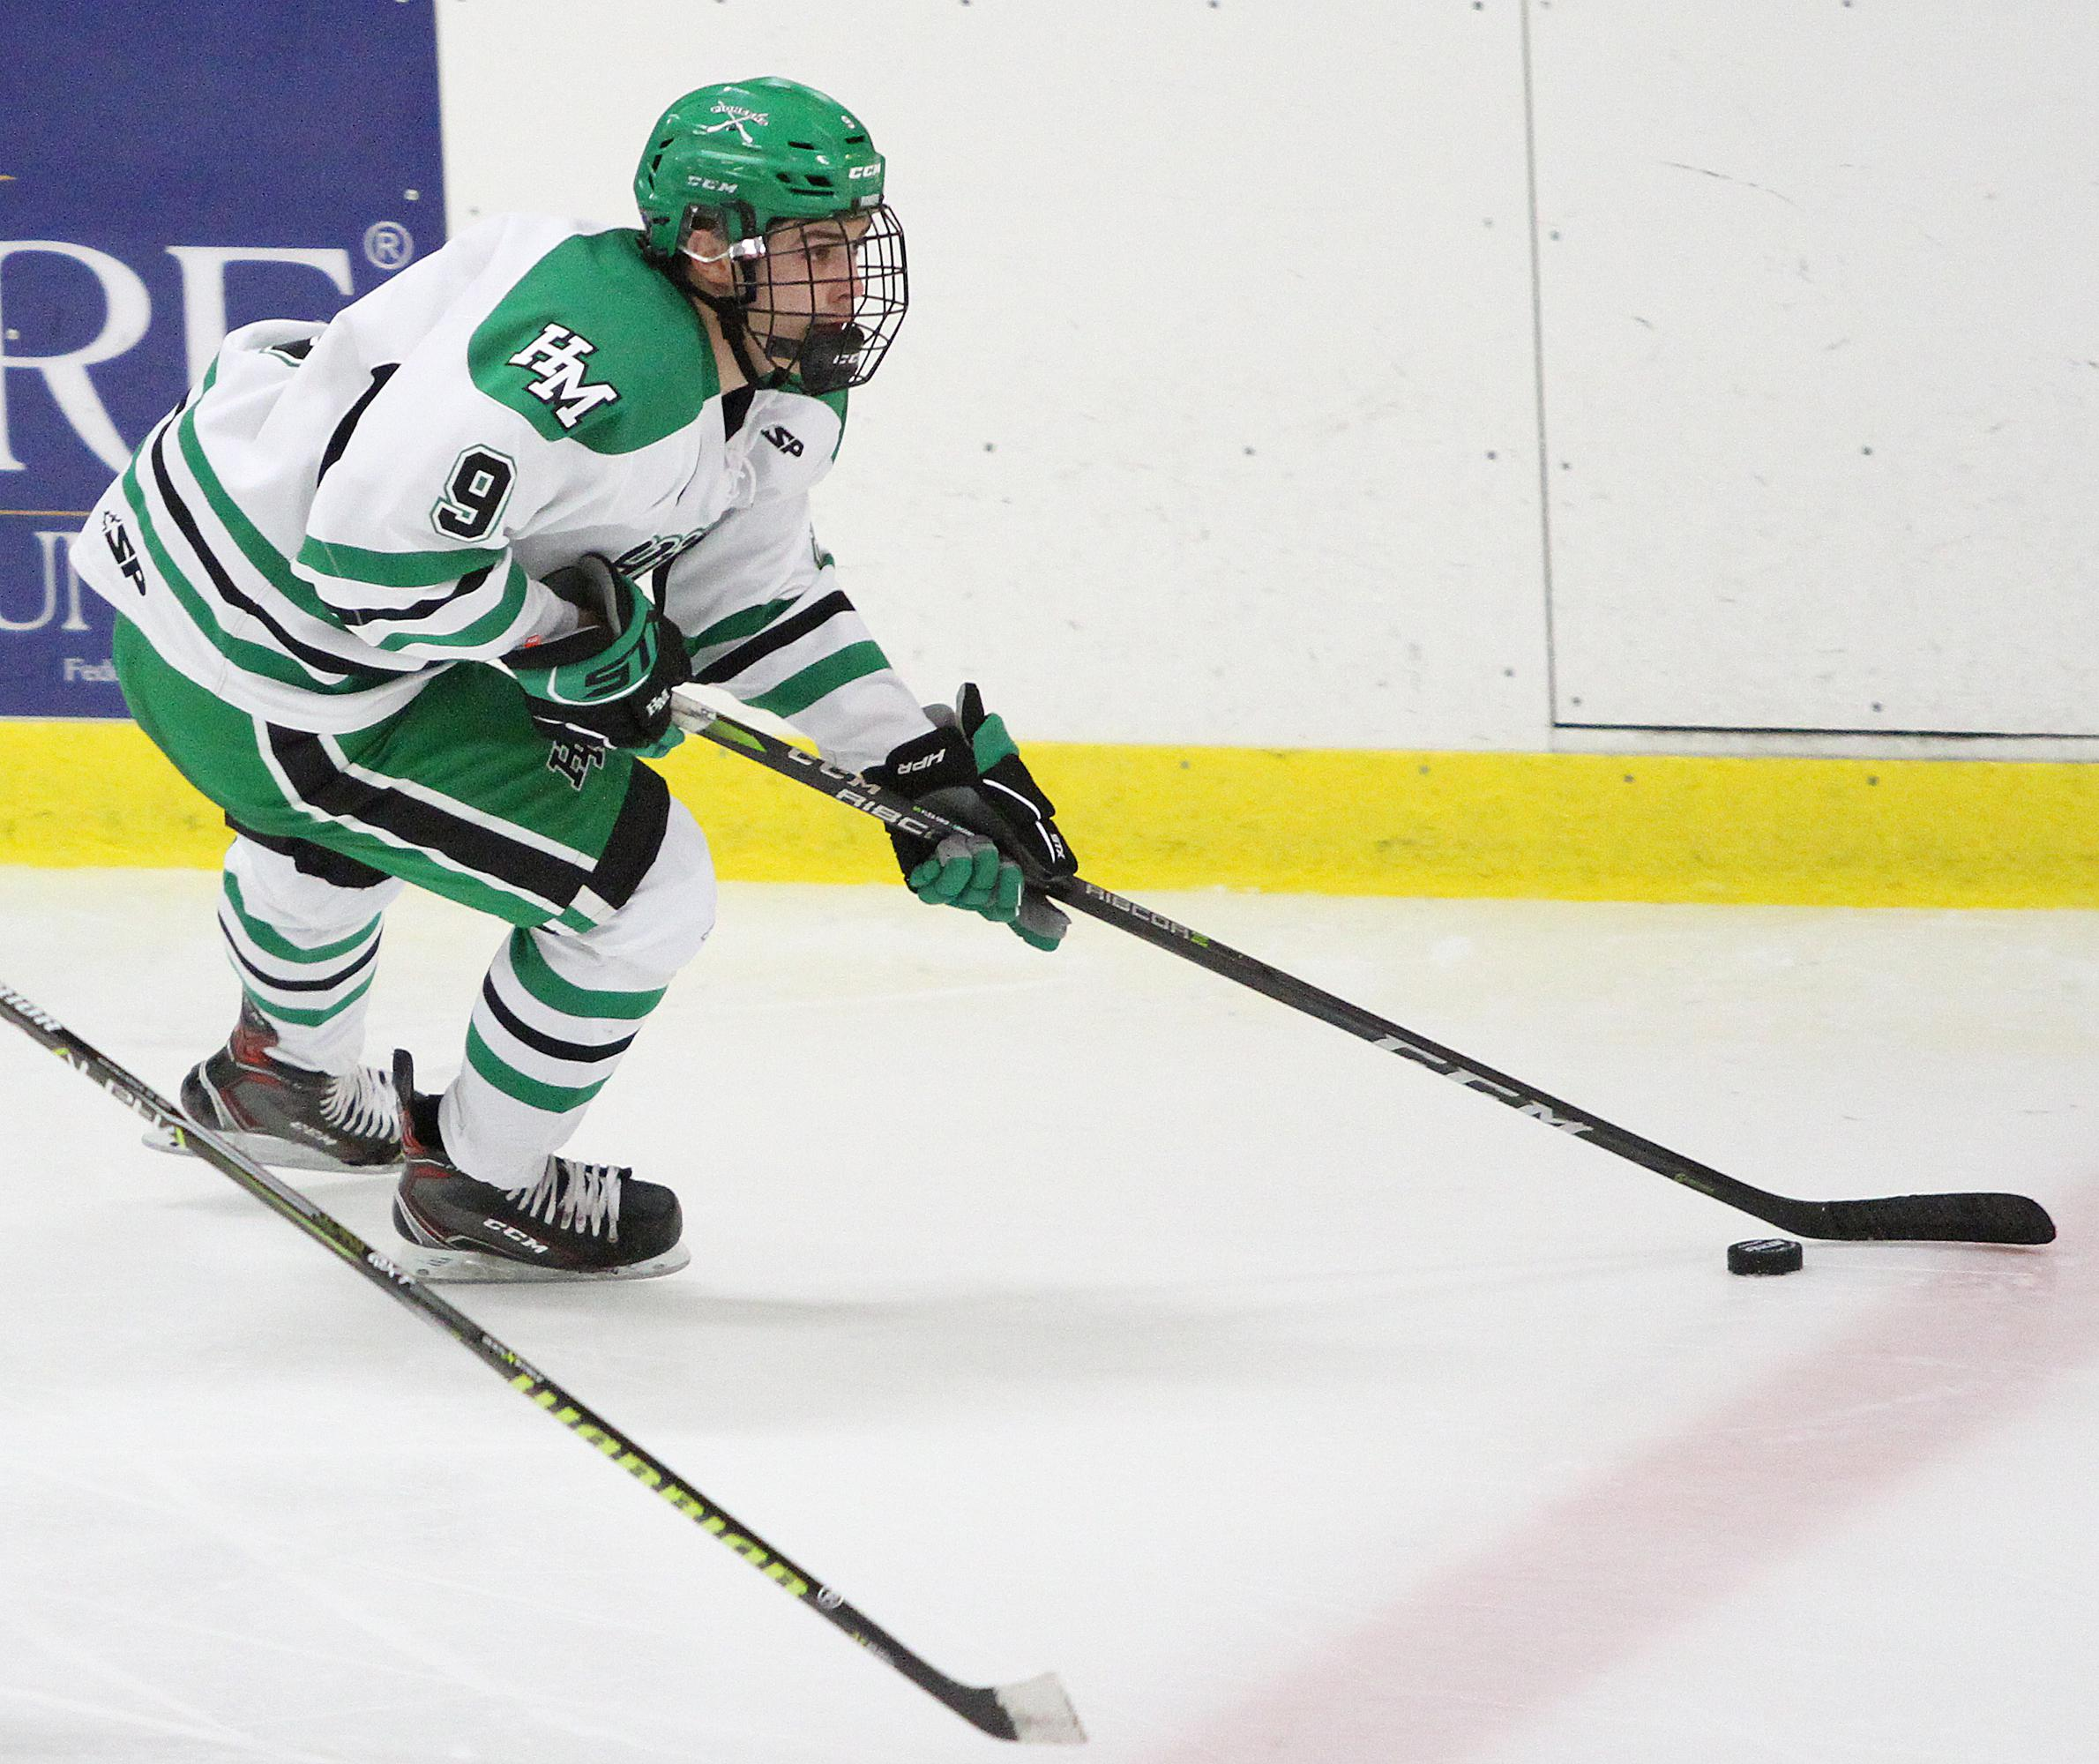 Hill-Murray junior captain Ben Helgeson finished with two assists in the Pioneers' 4-2 loss to White Bear Lake Saturday night. Photo by Drew Herron, SportsEngine